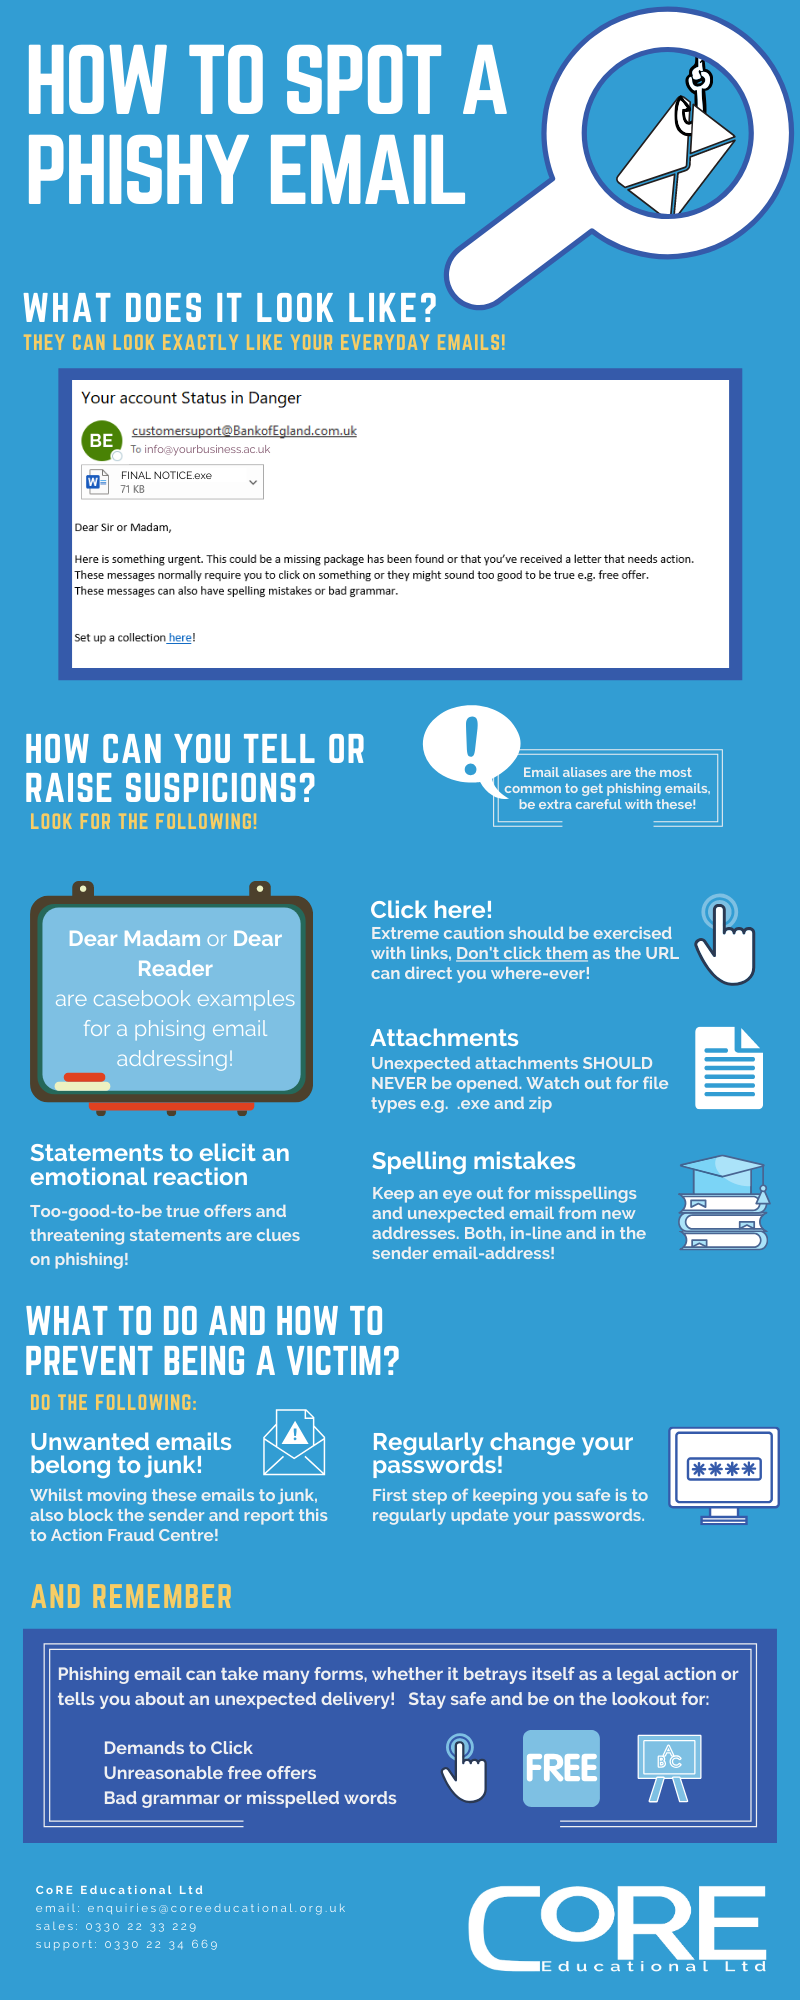 How to Spot A Phishy Email Infographic